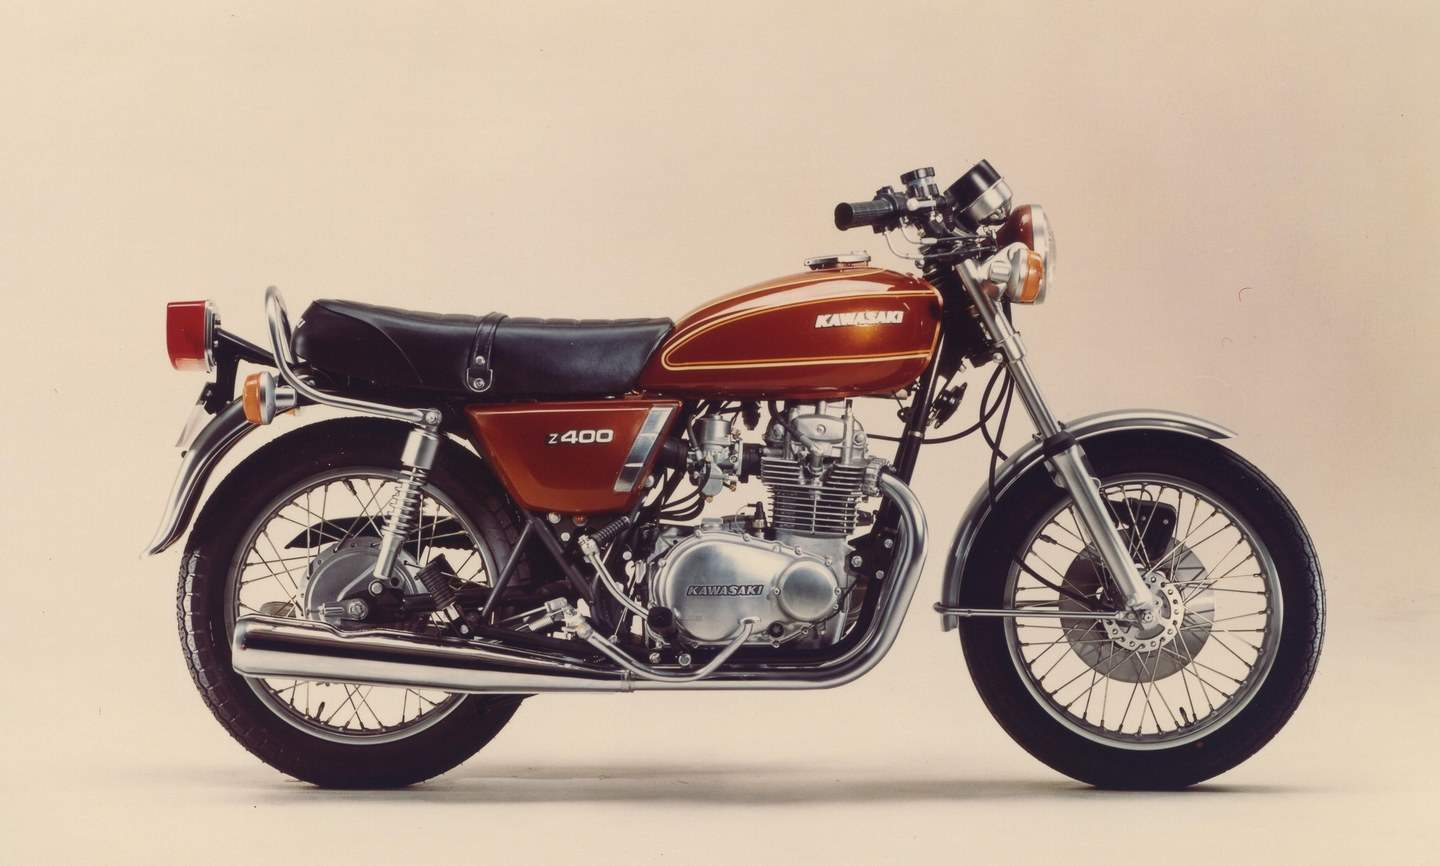 Kawasaki Z 400 (1974 bis 1980) - Robuster Parallel-Twin